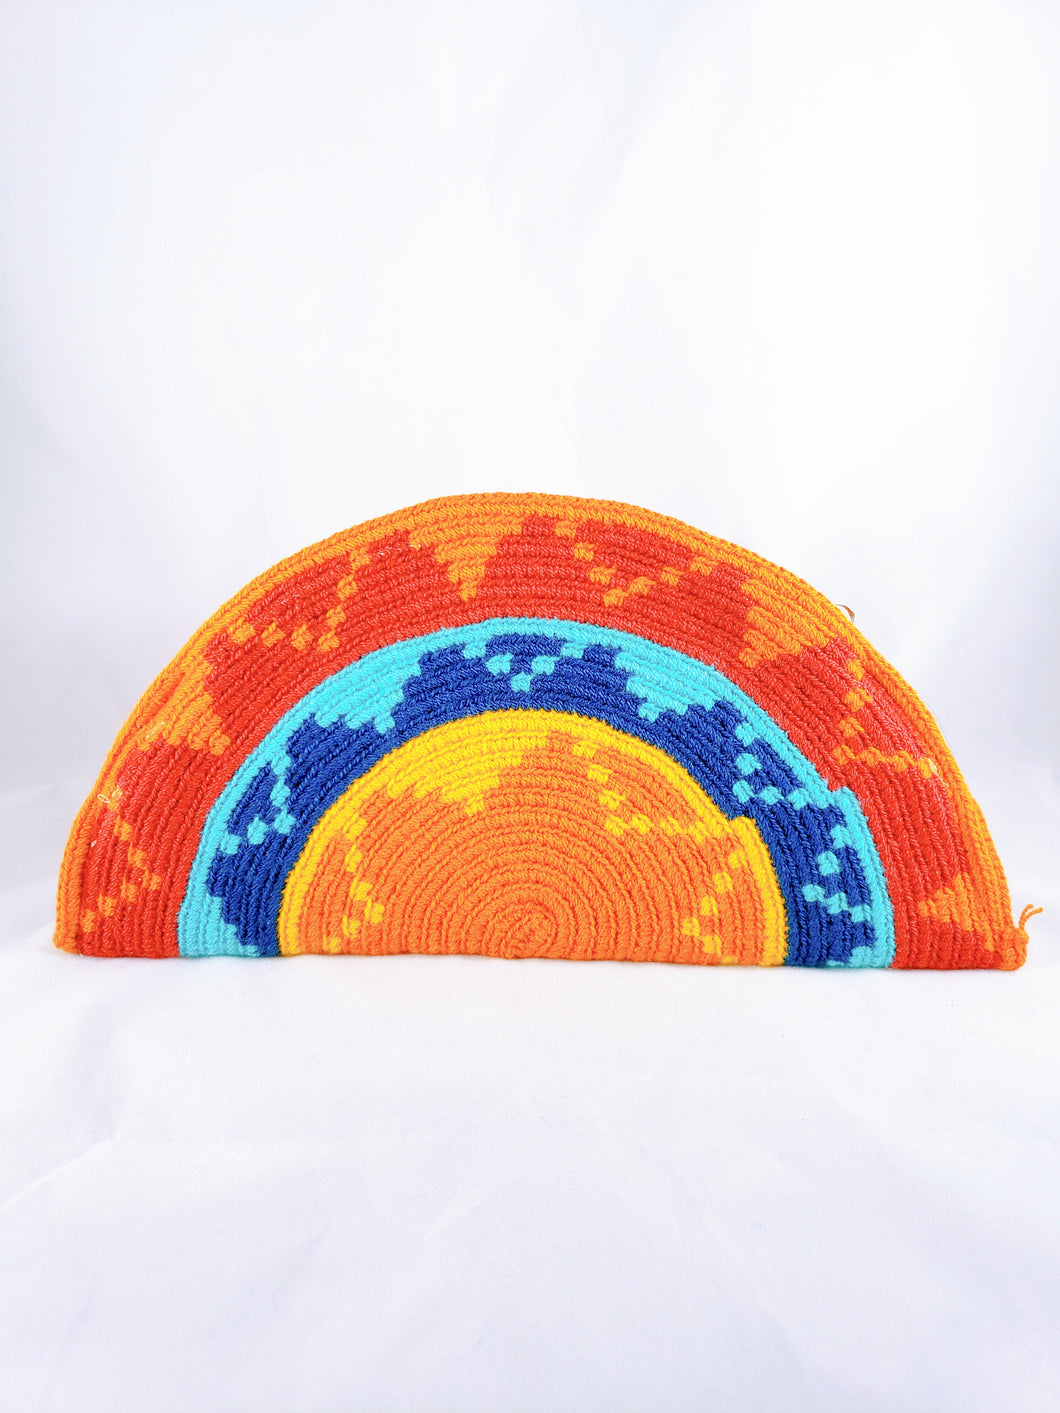 Orange, and Blue Handmade Wayuu Crochet Clutch - Wuitusu